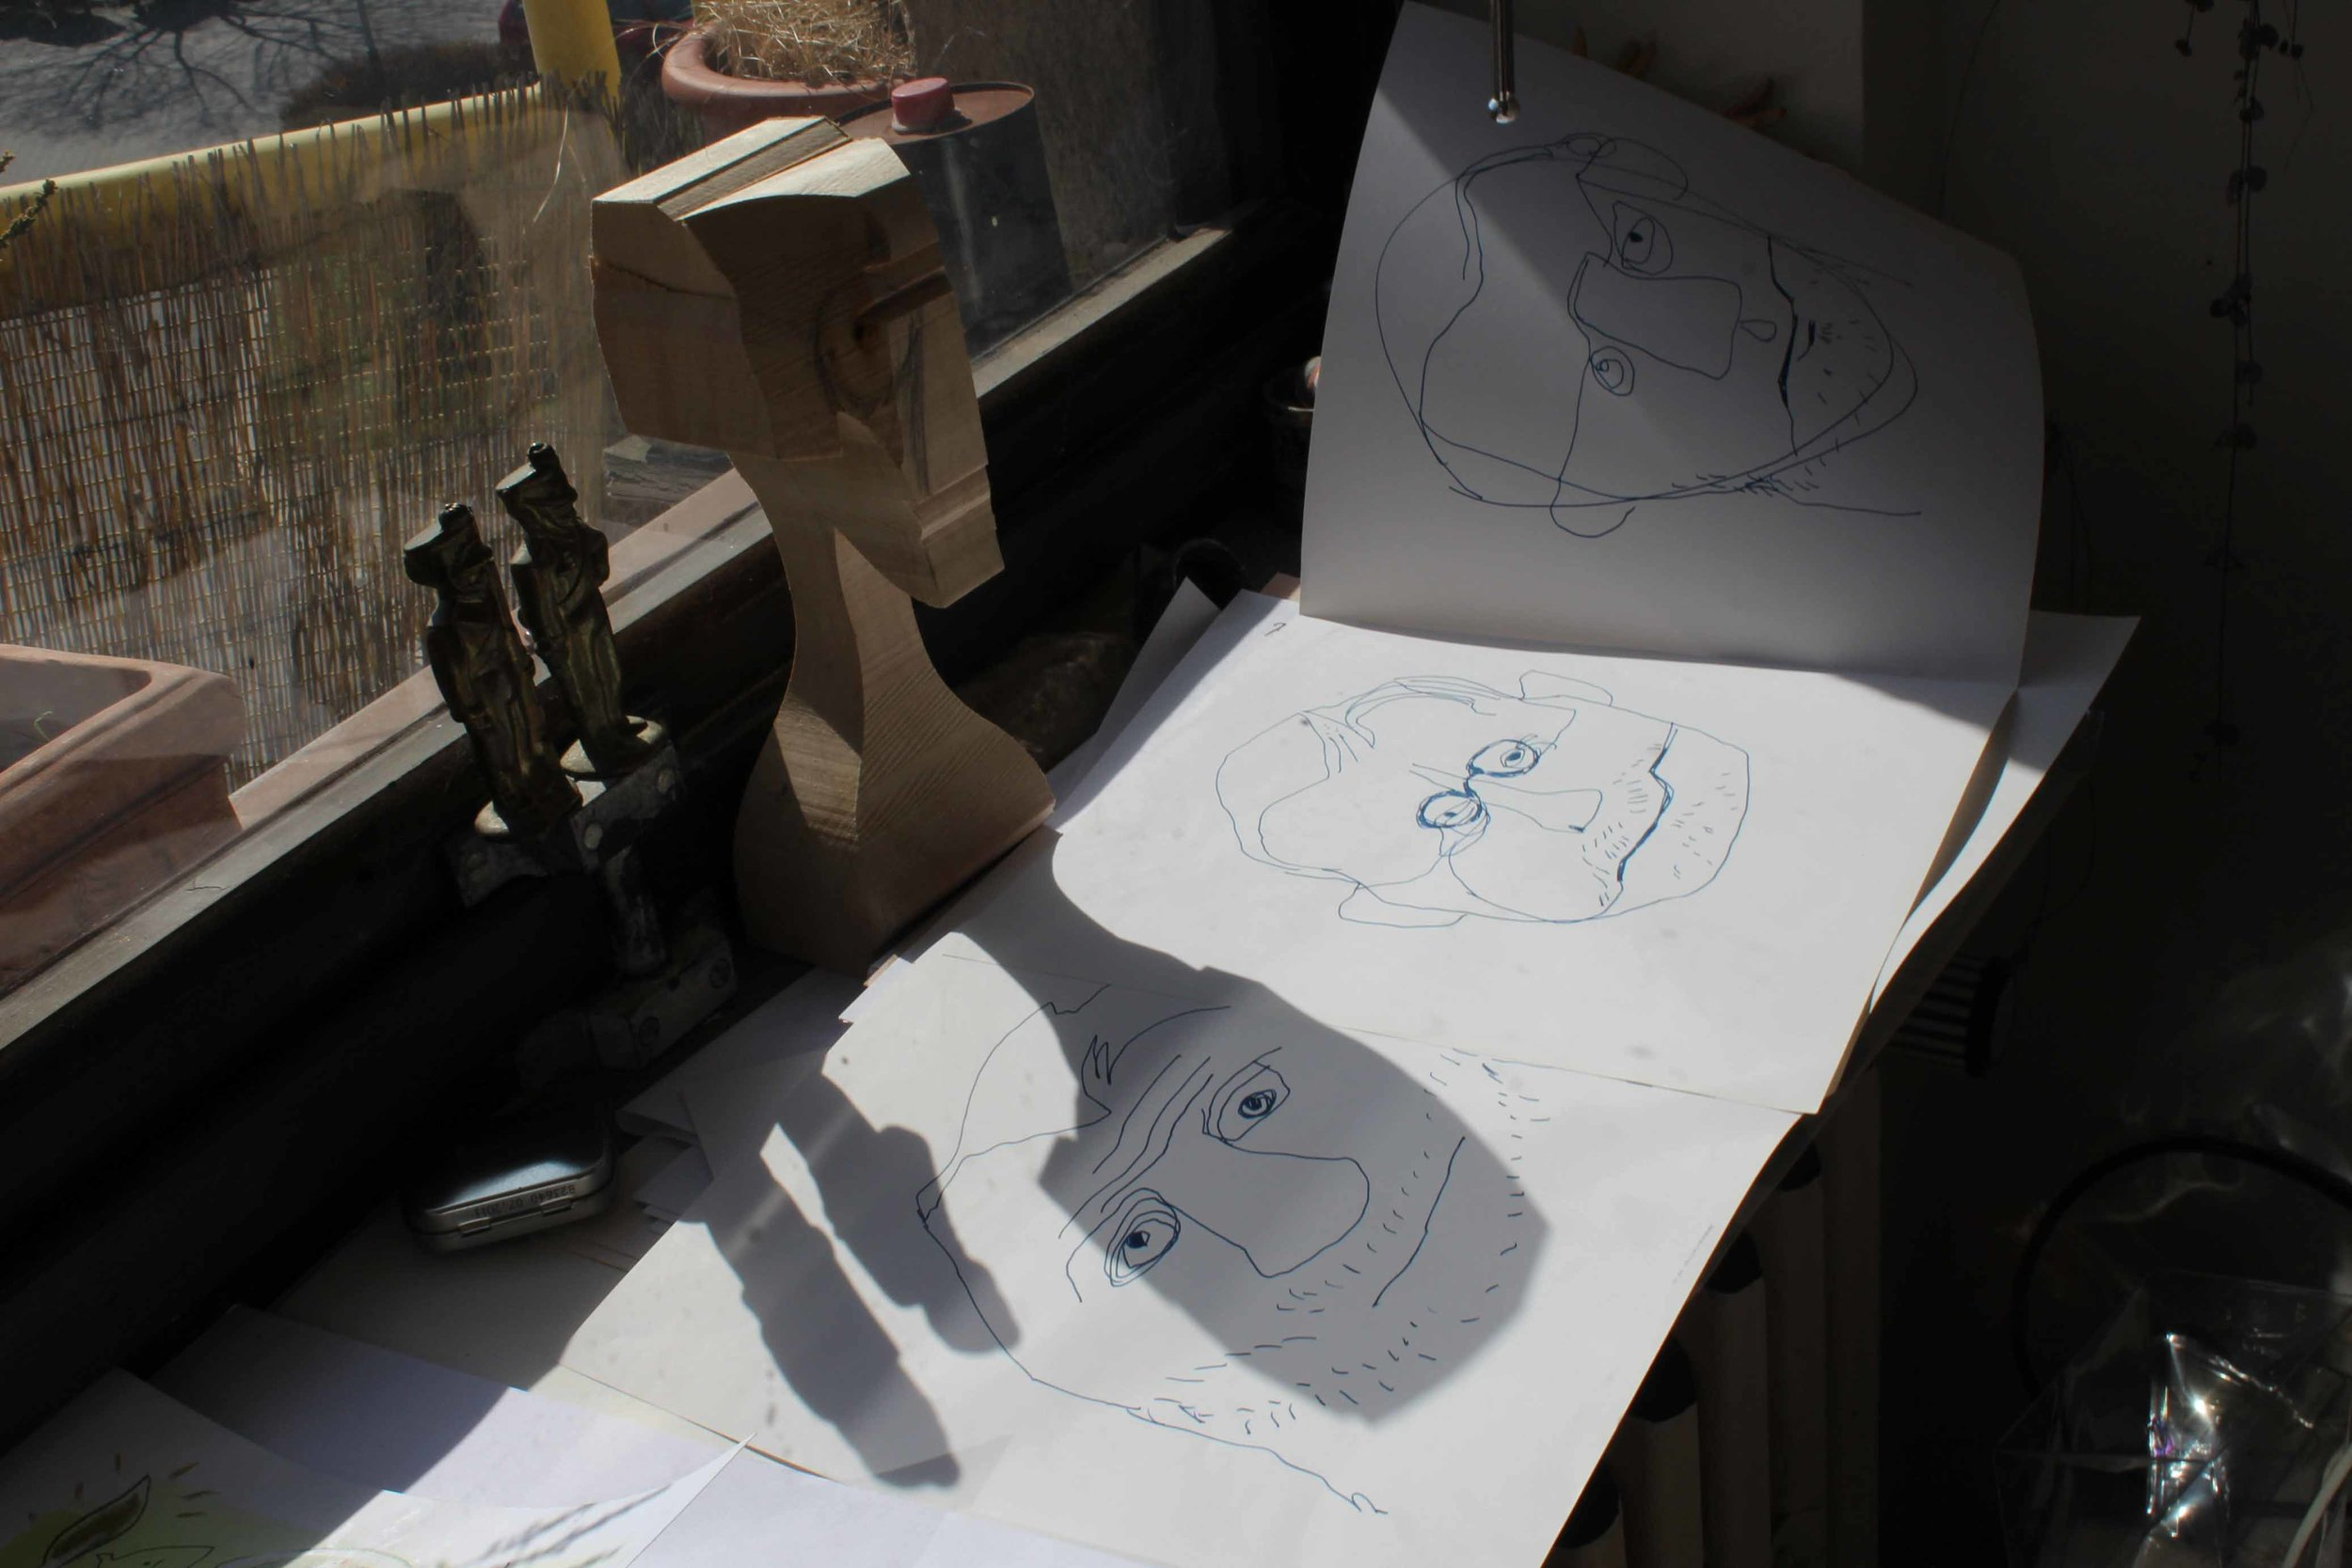 Bartoňová typically sketches designs for her marionettes on paper, however, she has begun to use digital technology to draw her designs. Bartoňová wants to project the ancient craft of puppetry into the digital age so that the art form can evolve with the times.